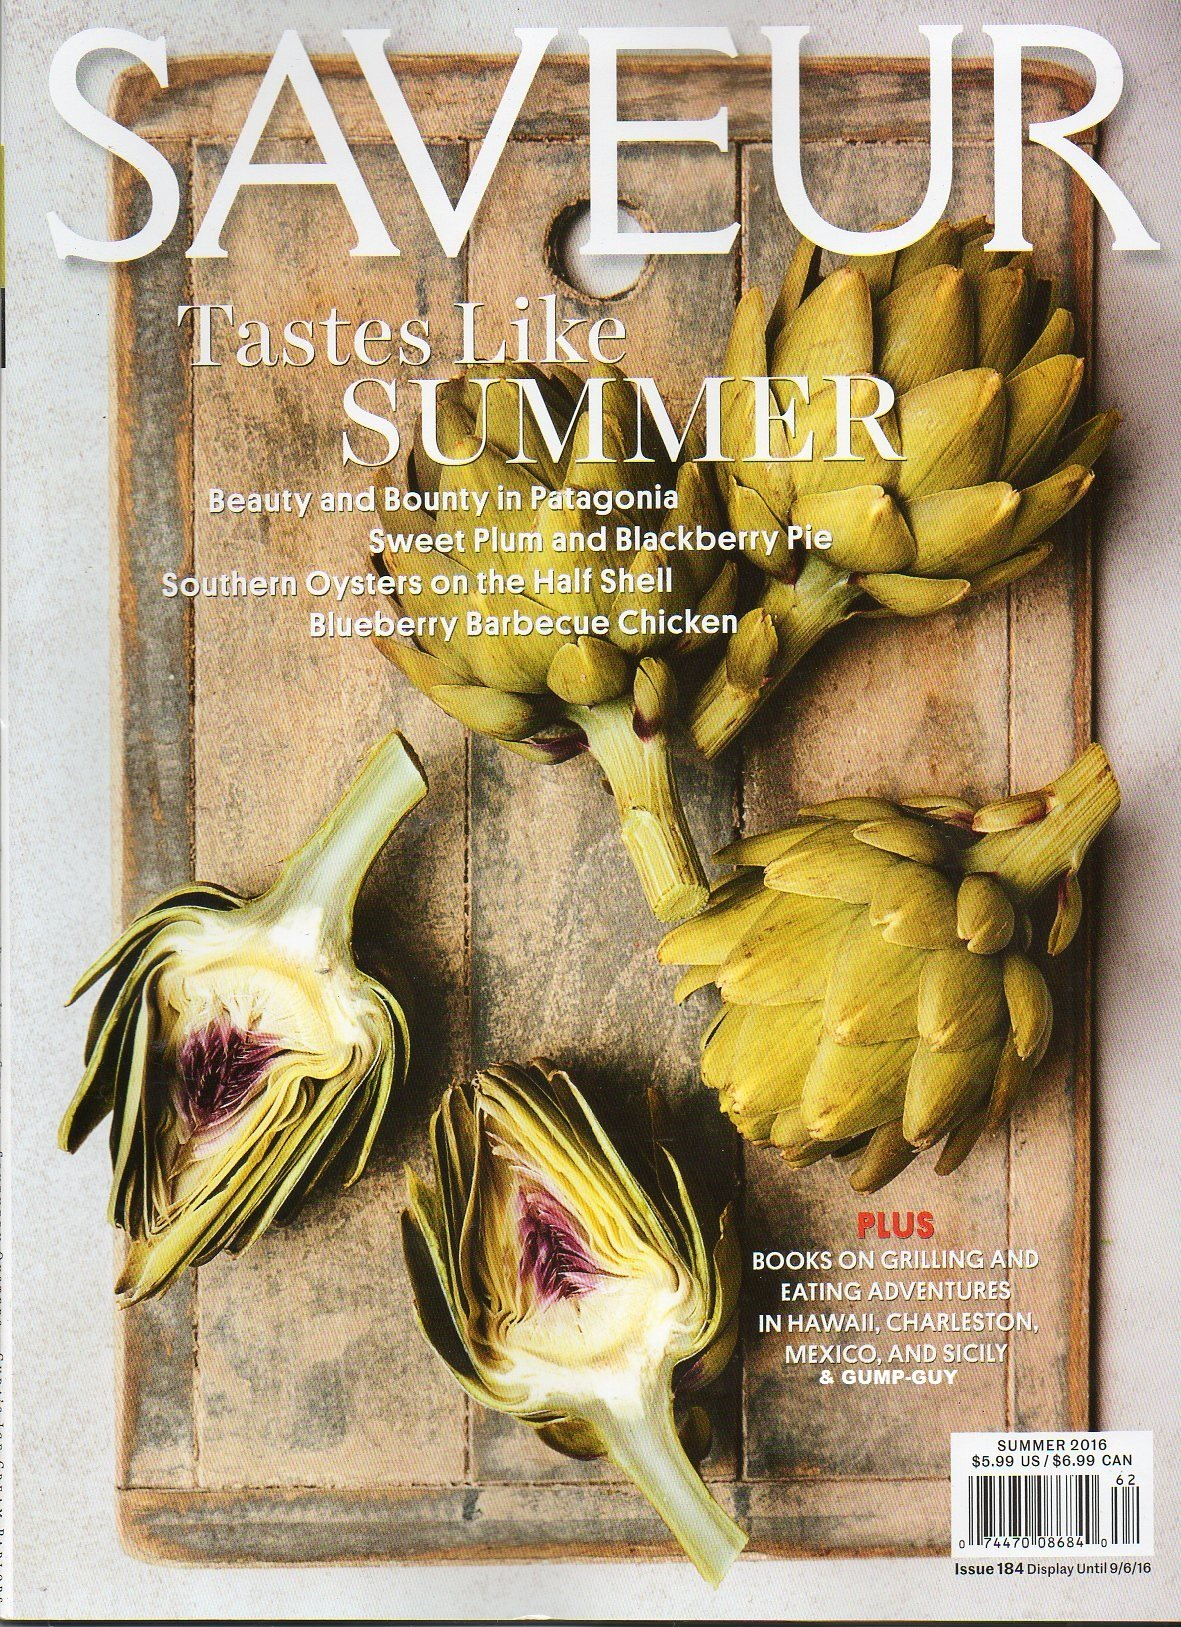 Saveur 2016 Magazine BLUEBERRY BARBECUE CHICKEN Southern Oysters On The Half Shell ebook